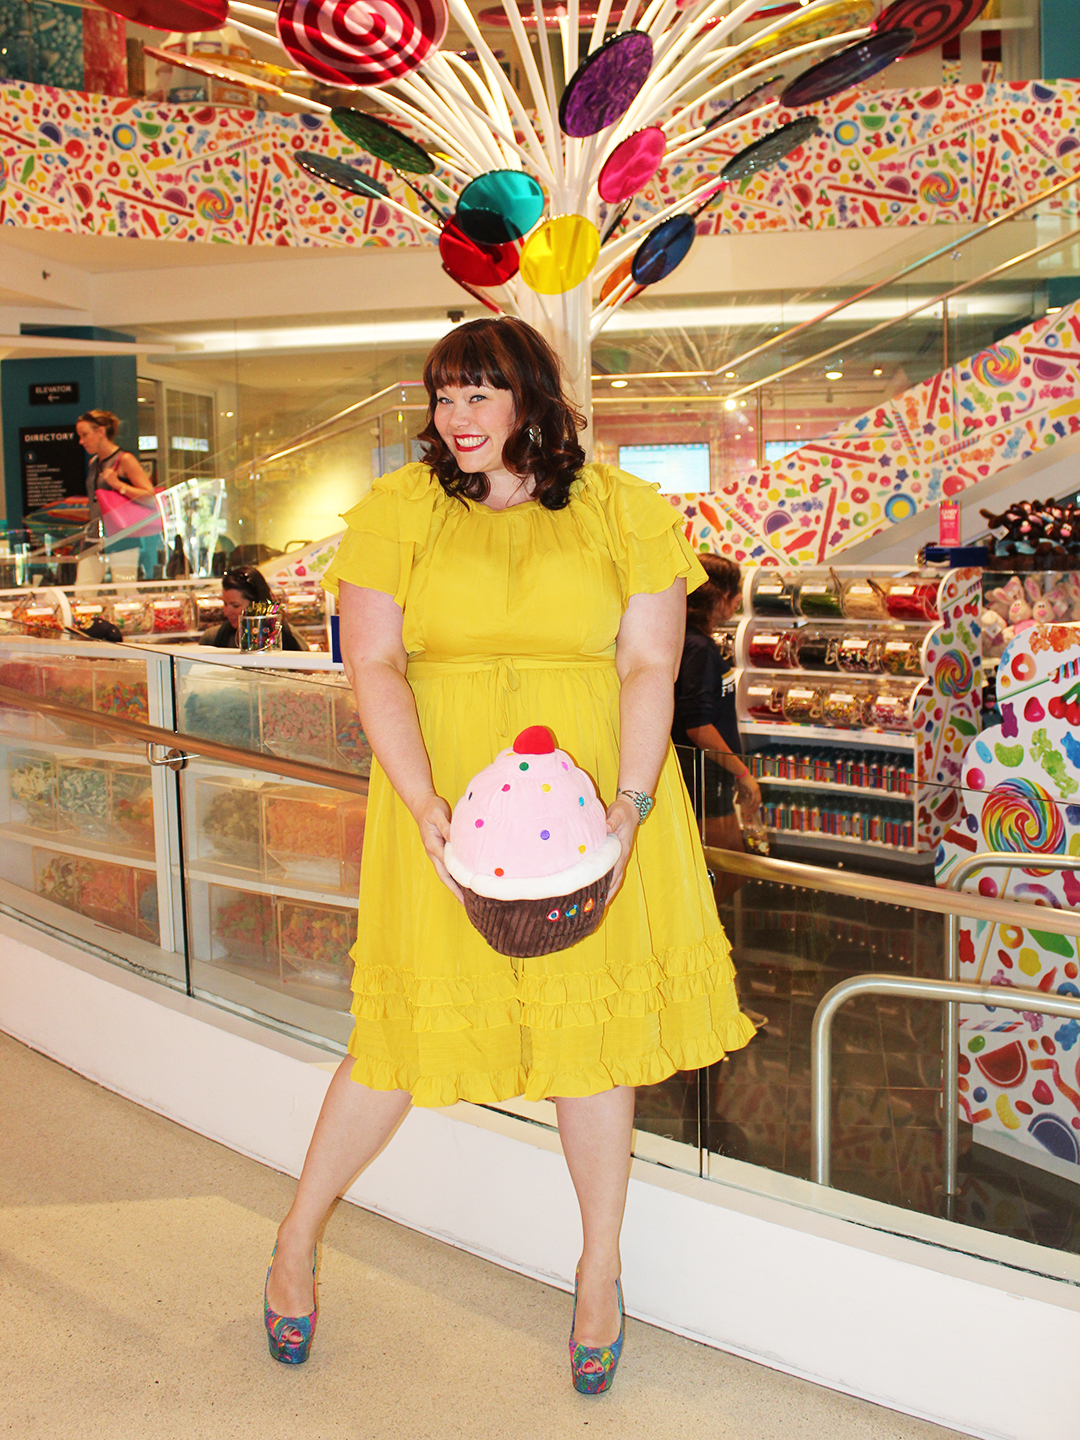 Plus Size Blogger Amber from Style Plus Curves in a Yellow Eloquii Ruffled Dress, yellow dress, plus size model, plus size fashion, ruffled dress, candy